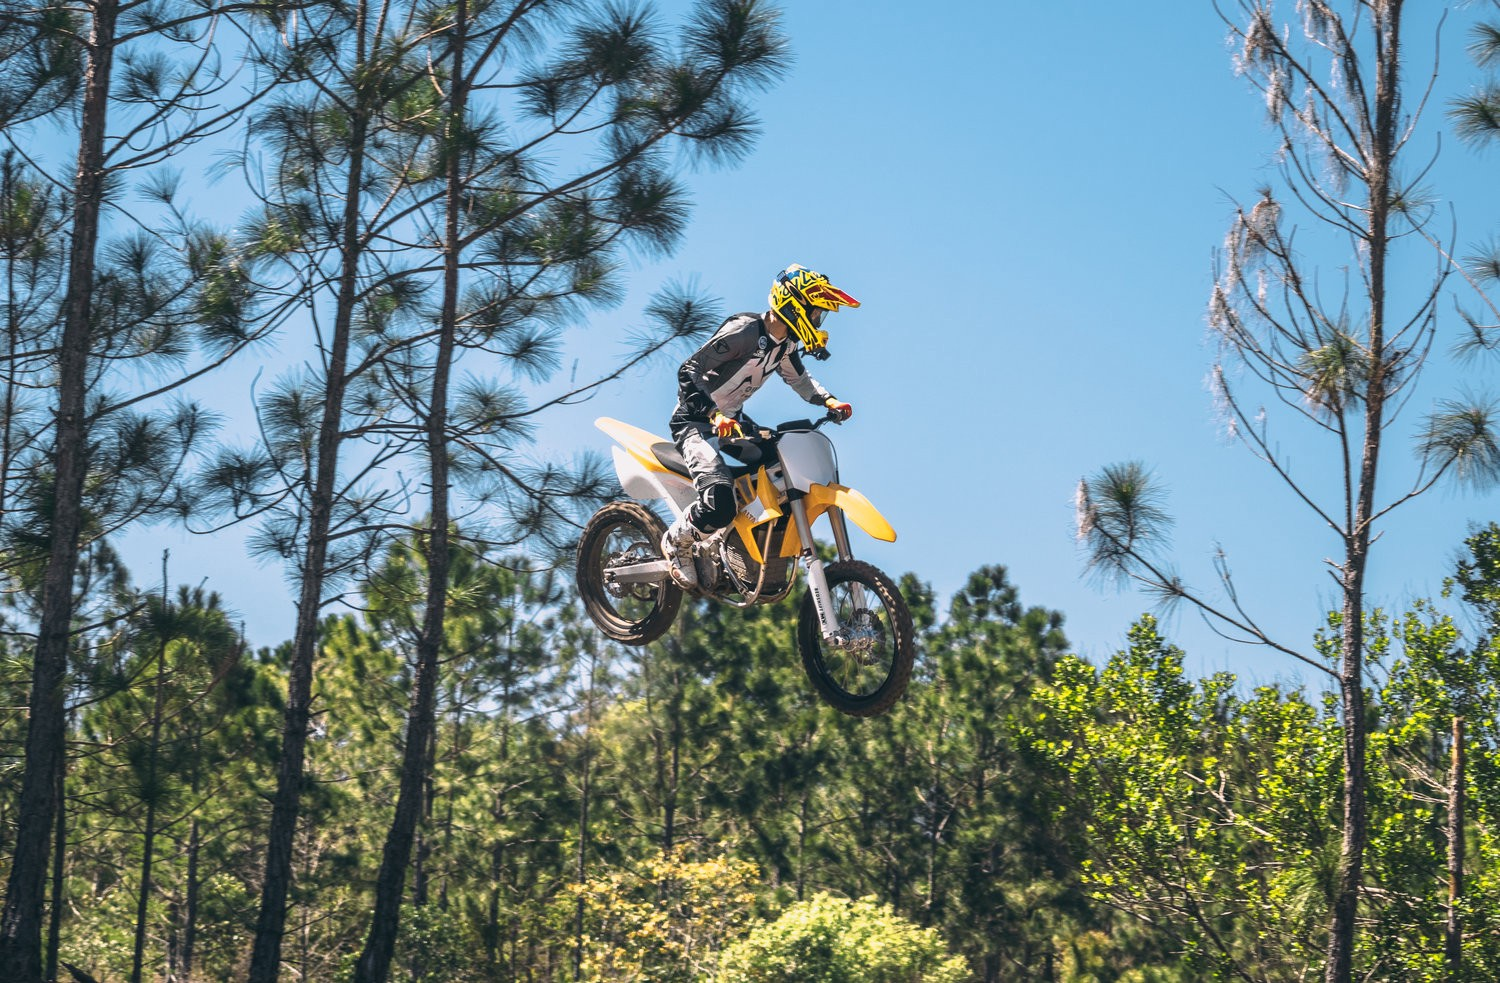 Electric Dirt Bikes Arent Just Toys Anymore Emmanuel Marshall